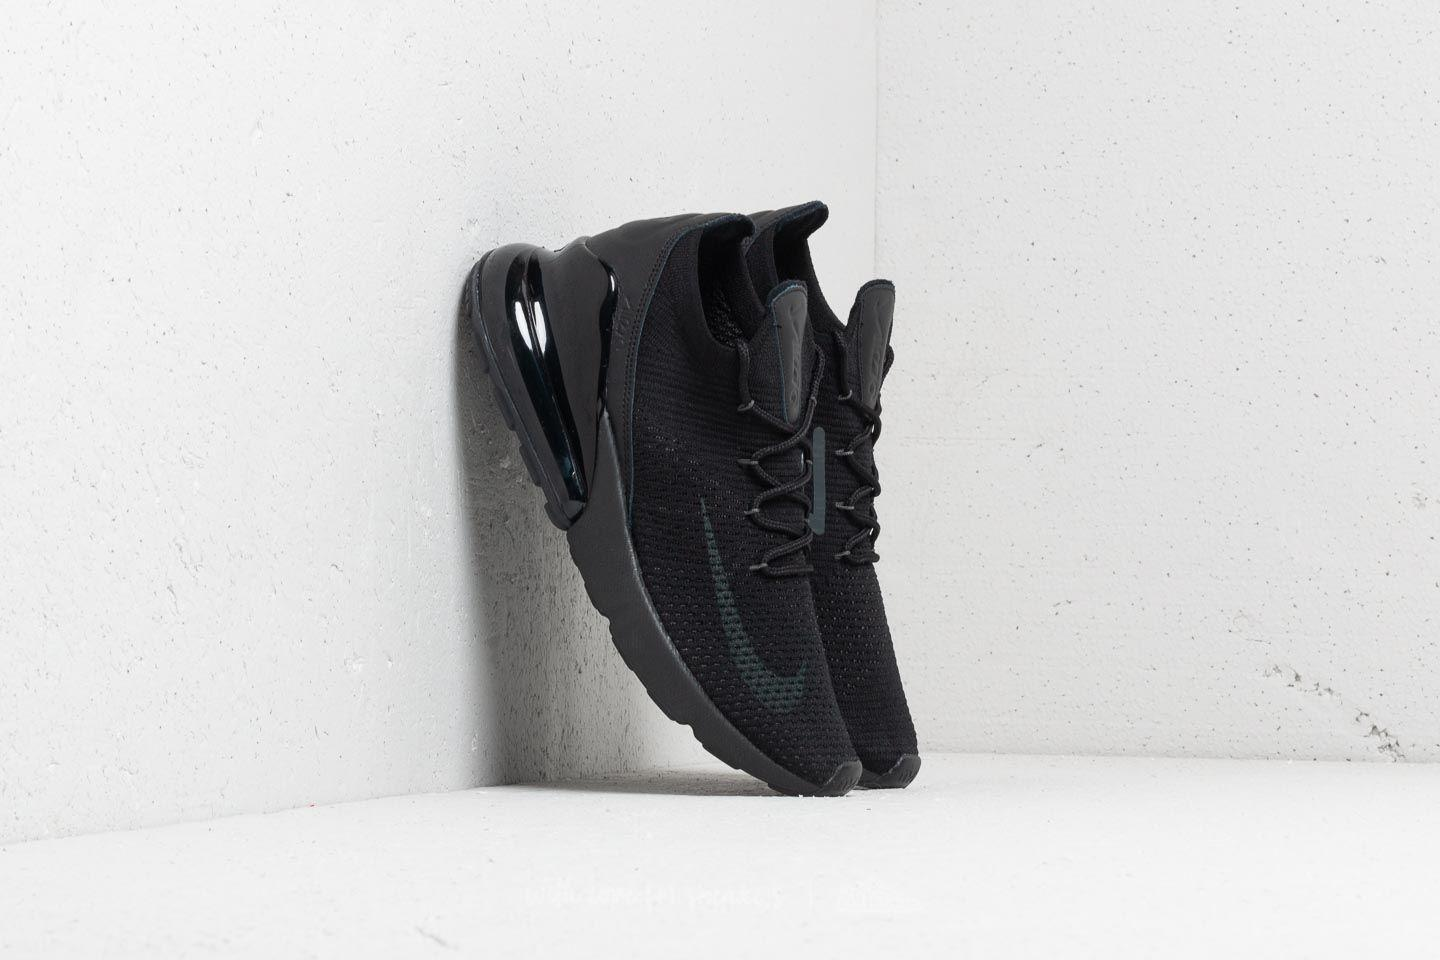 ... czech lyst nike air max 270 flyknit black anthracite black in black for  men e7d60 75c18 589f99bdf